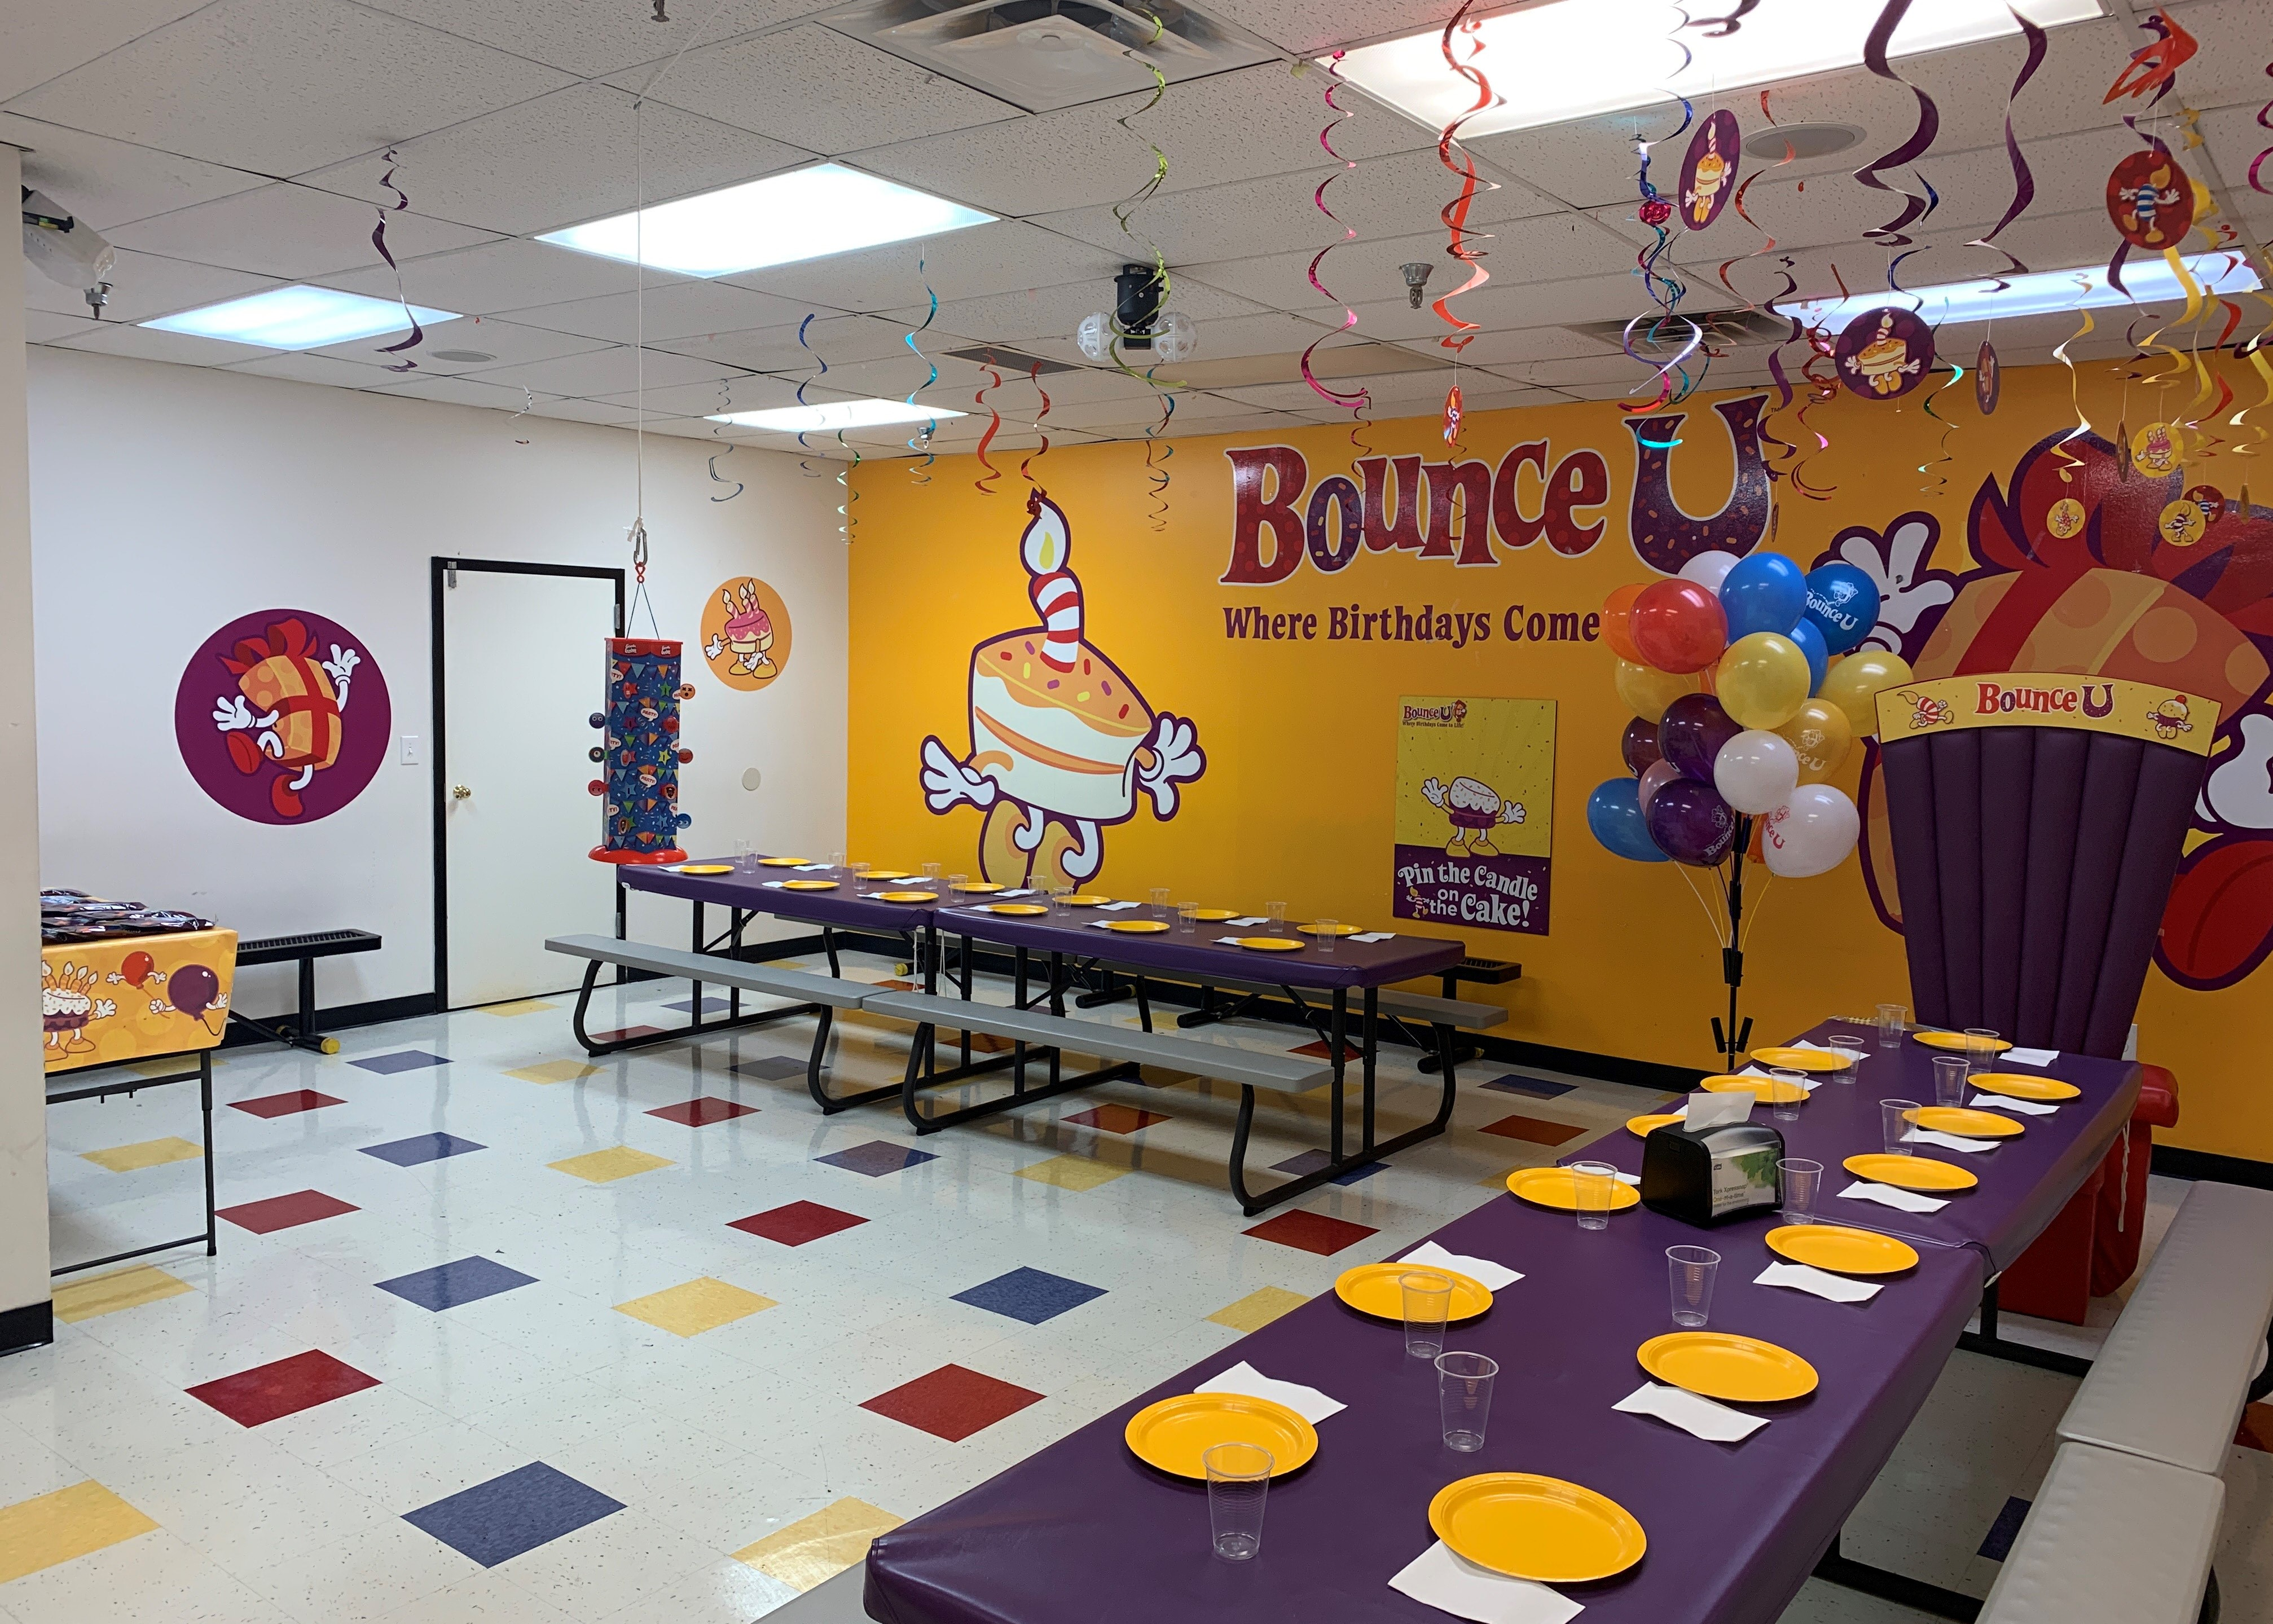 BounceU birthday party room with tables set up with plates and cups plus birthday throne for private parties.